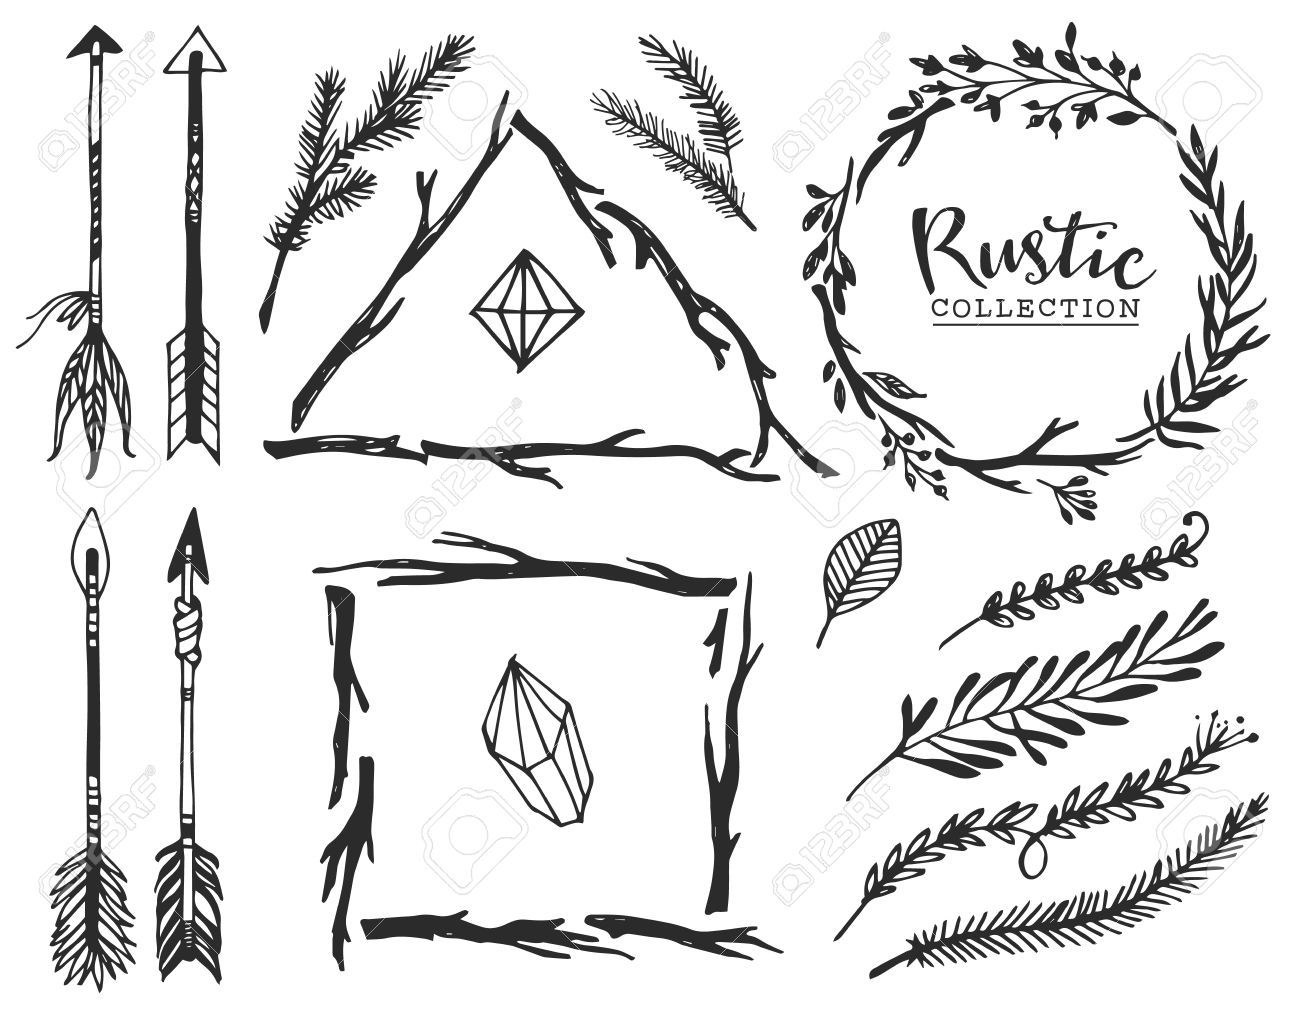 40000133 rustic decorative elements with arrow and lettering